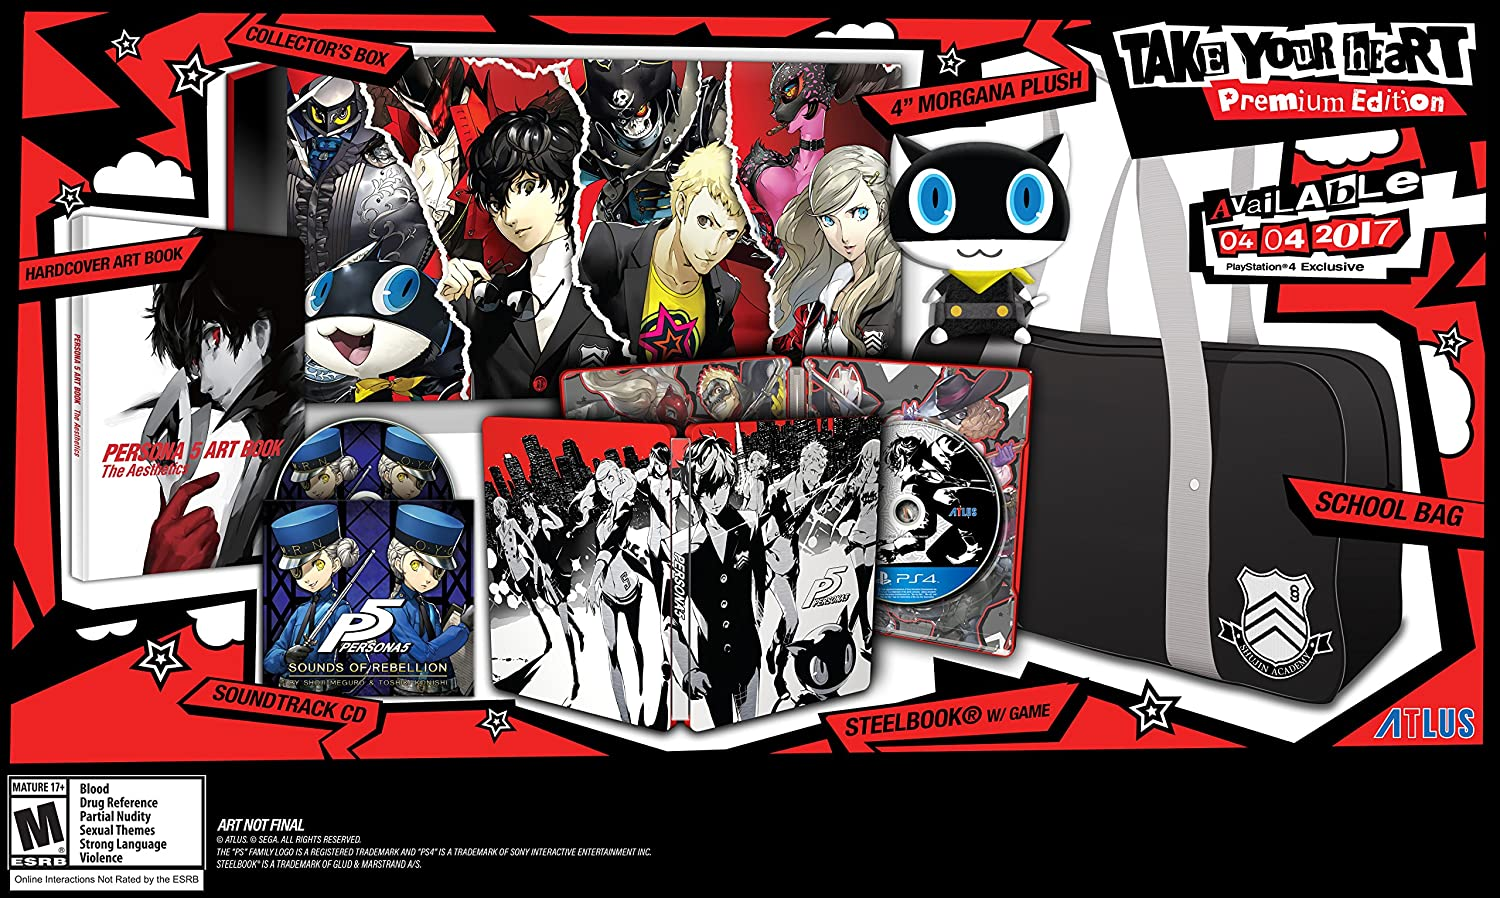 Original Game Cases & Boxes No Game Disc Persona 5 Ps4 Playstation Steelbook Launch Edition Case Only